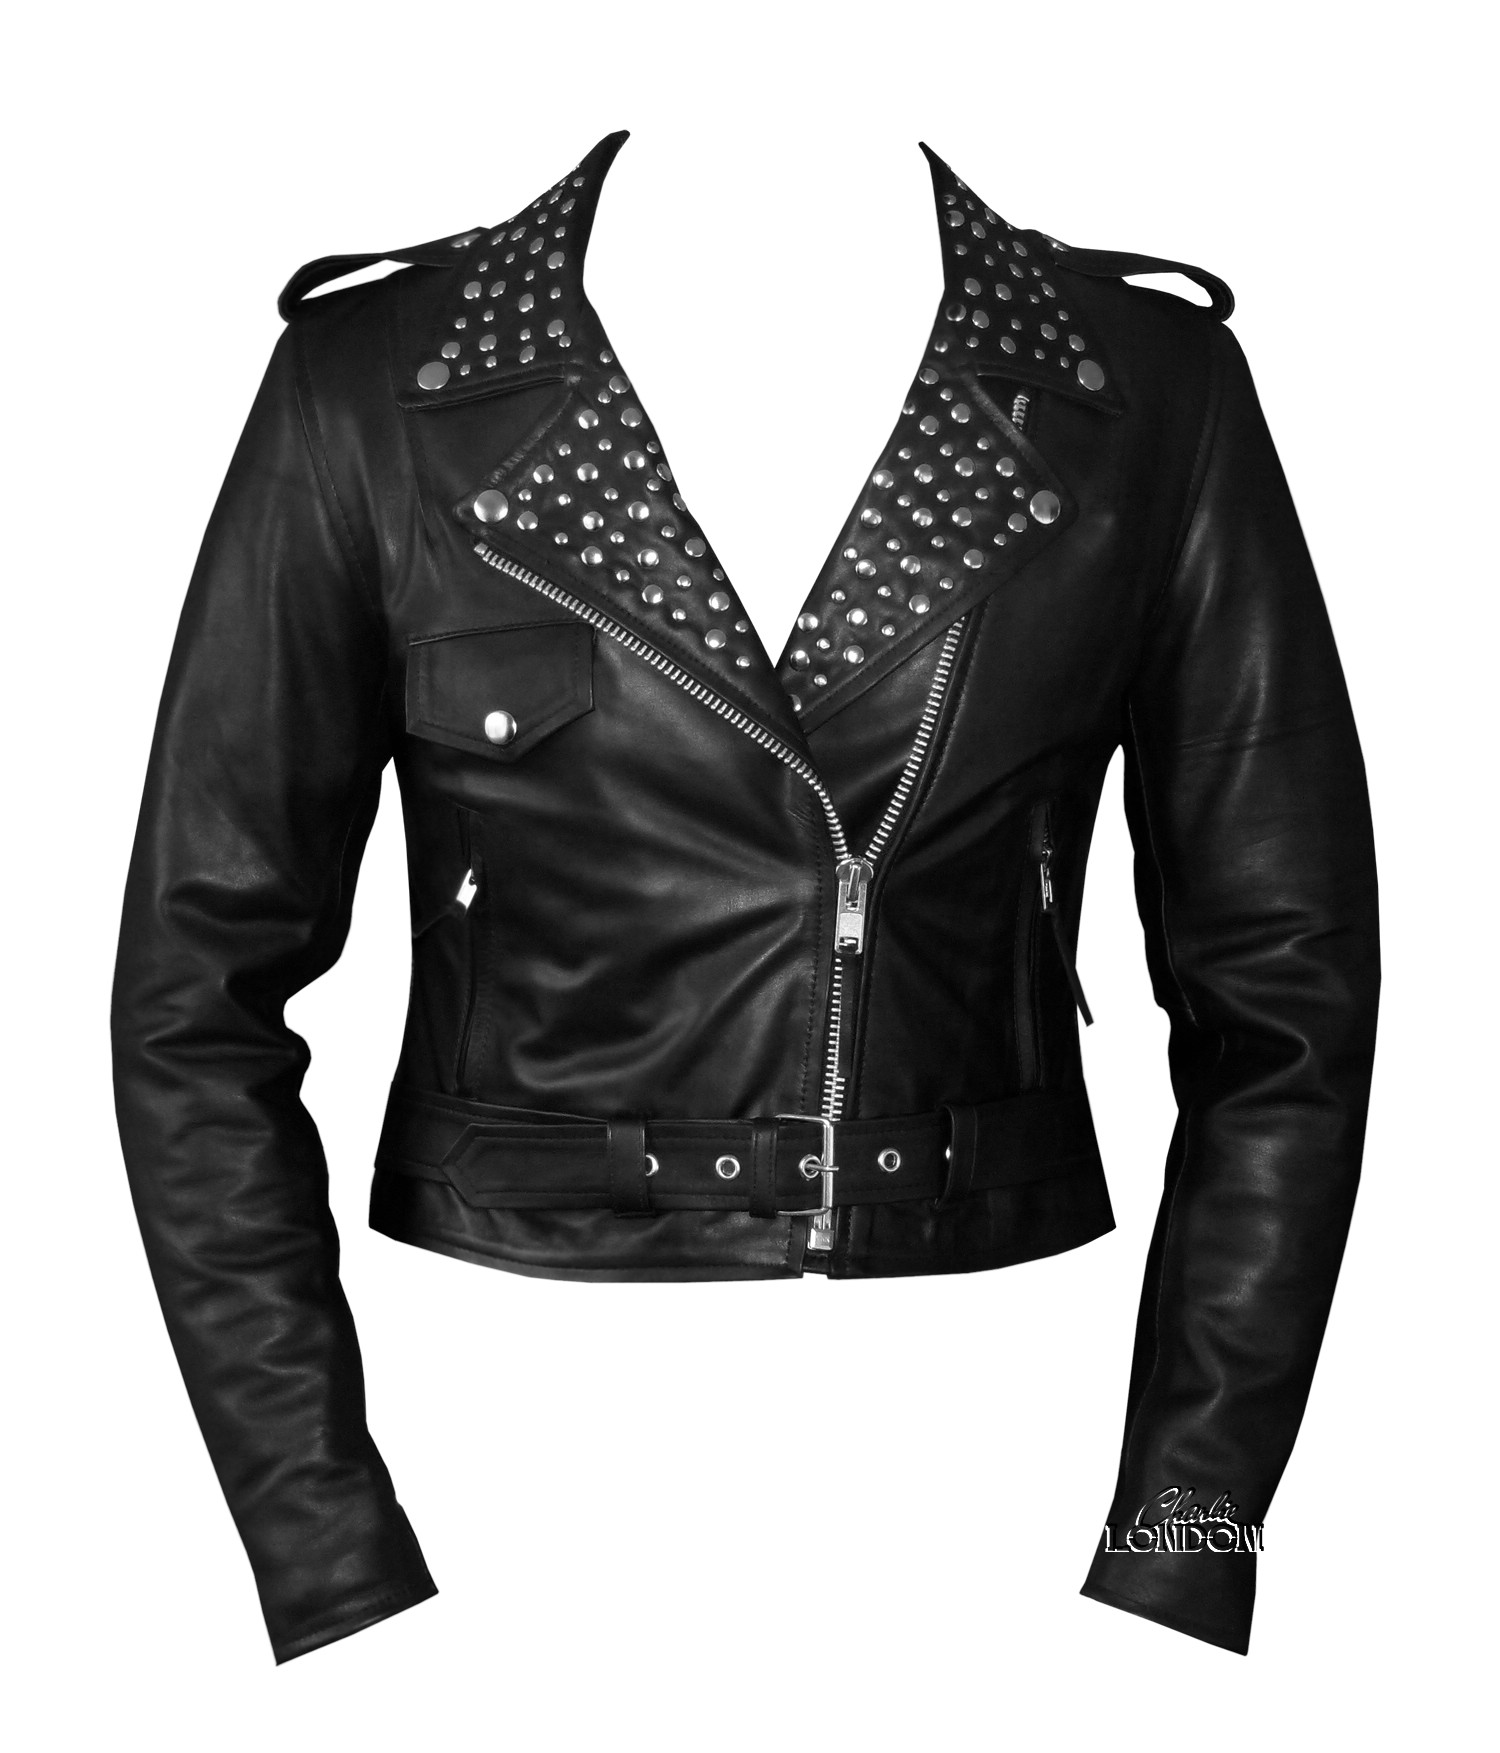 Similiar Leather Women Jackets Fashion Keywords